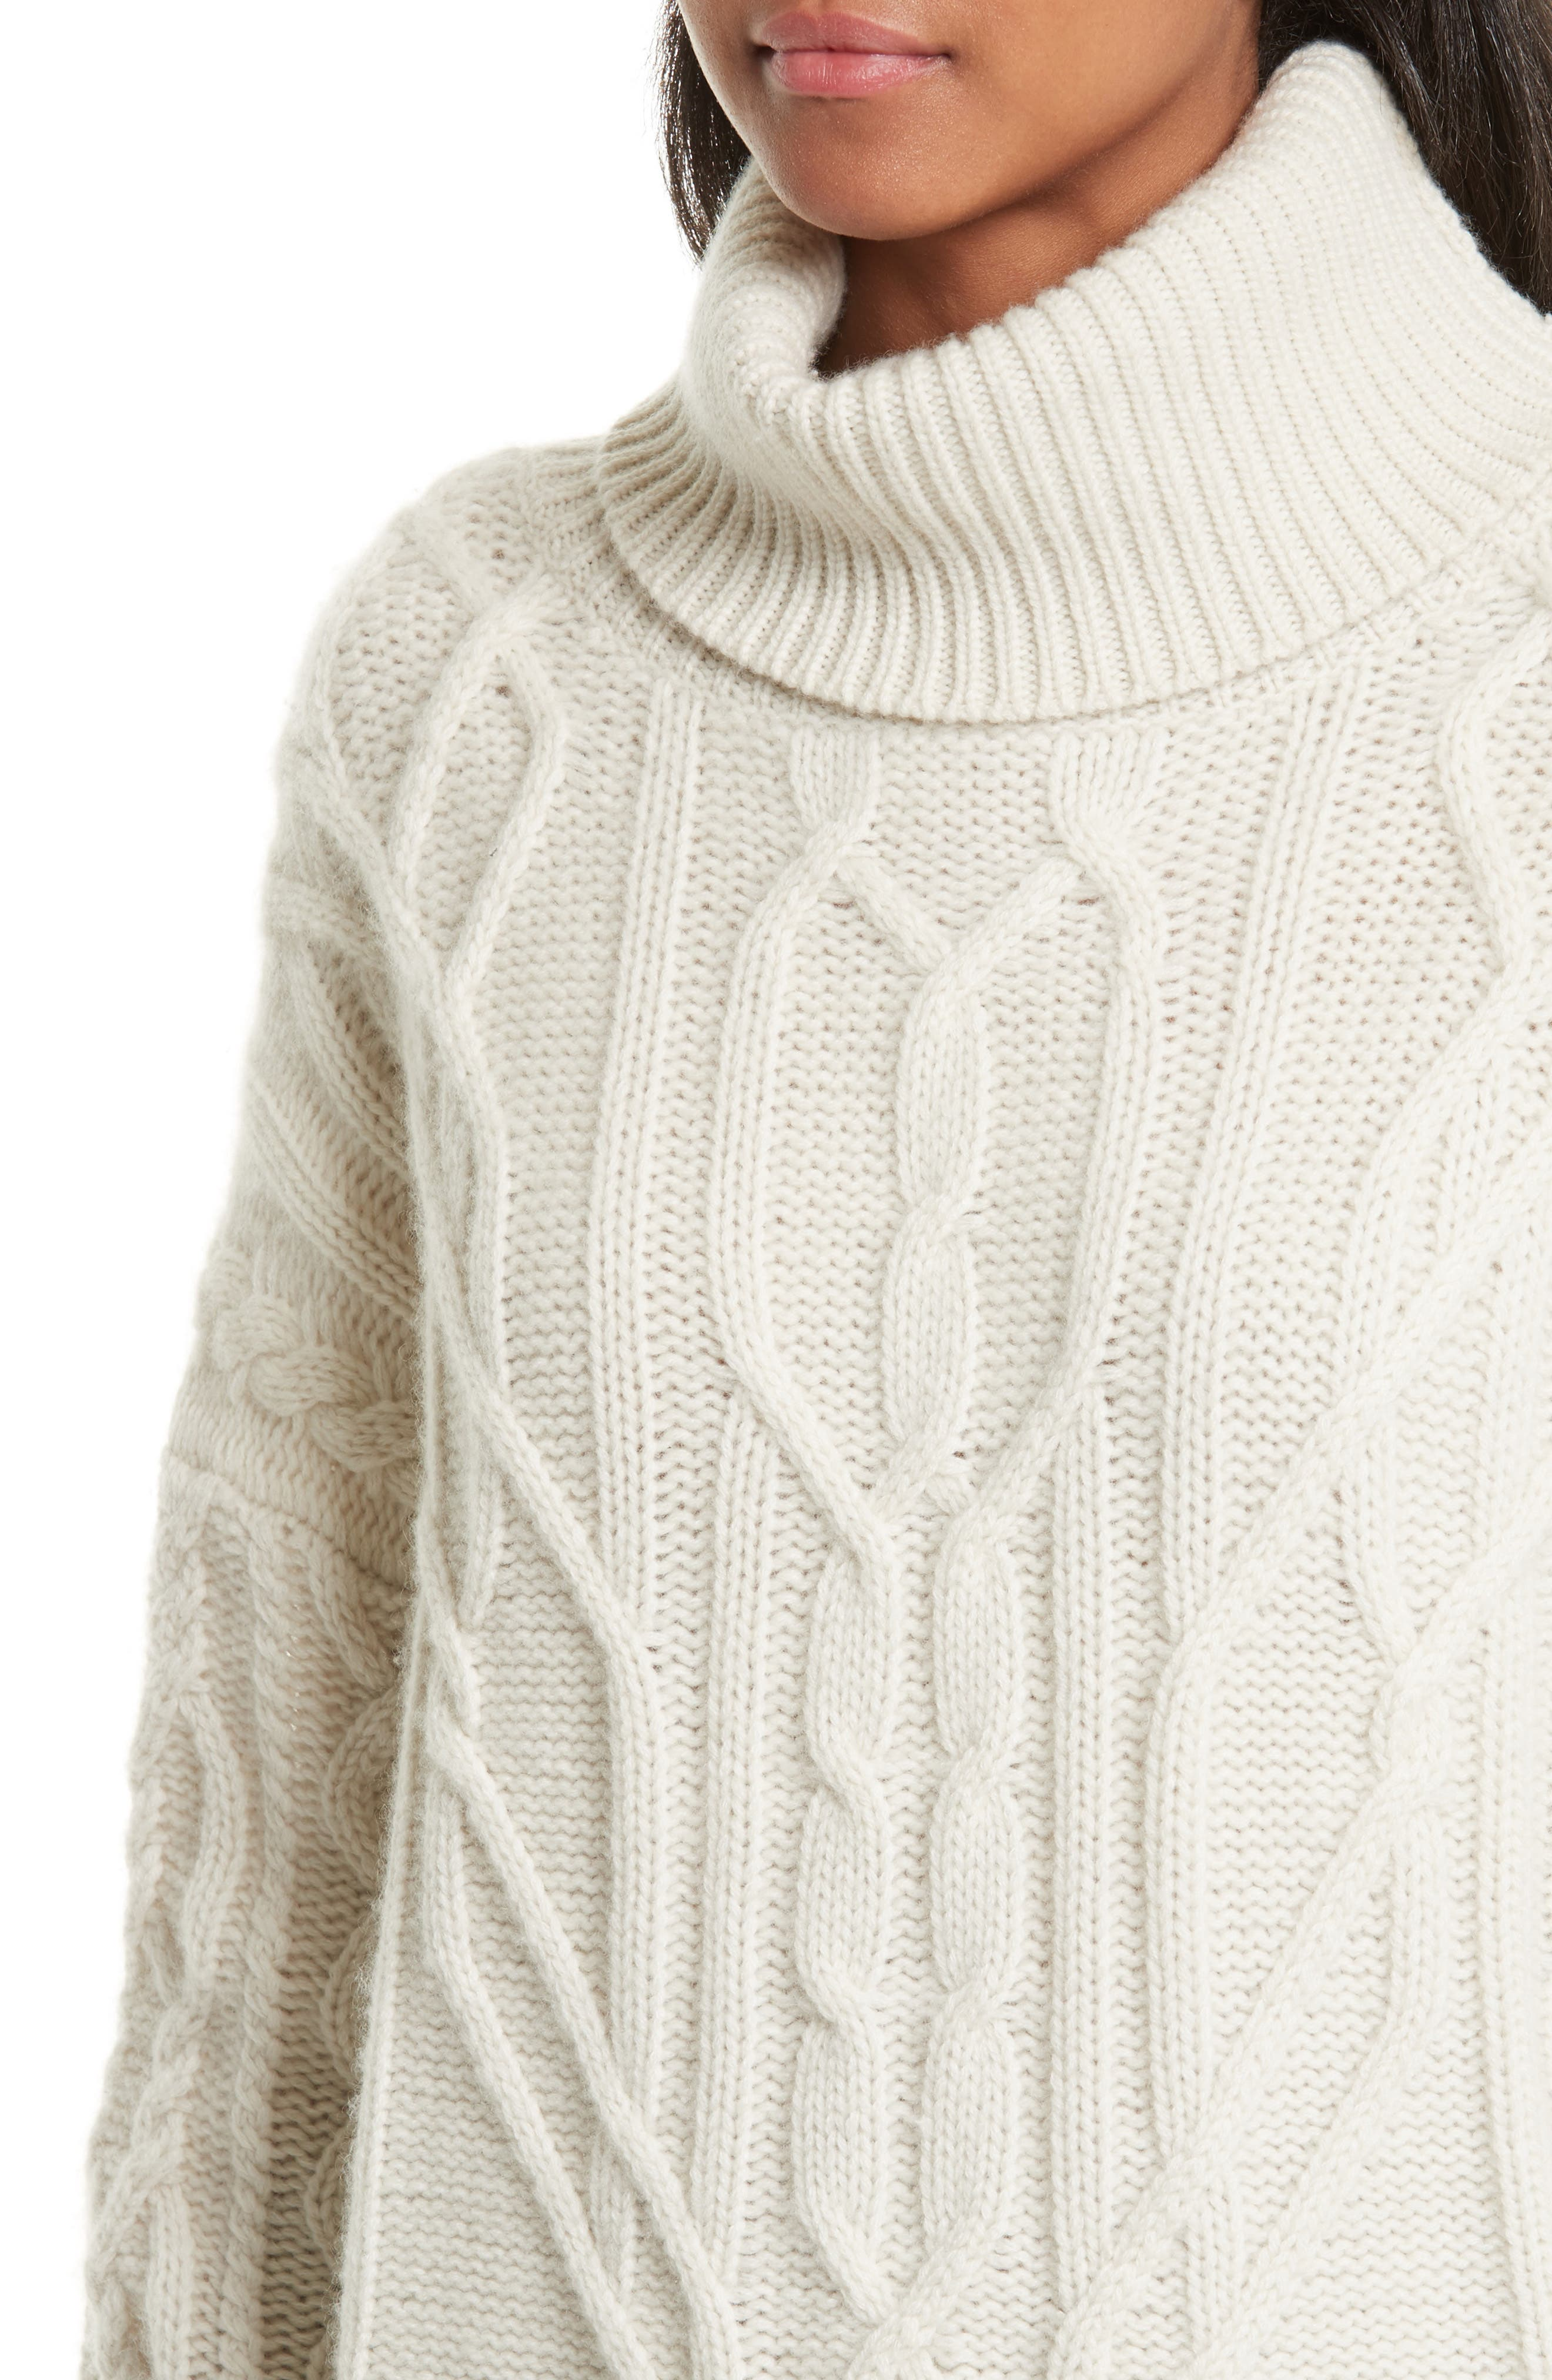 Cecil Cable Knit Cashmere Turtleneck Sweater,                             Alternate thumbnail 4, color,                             Ivory